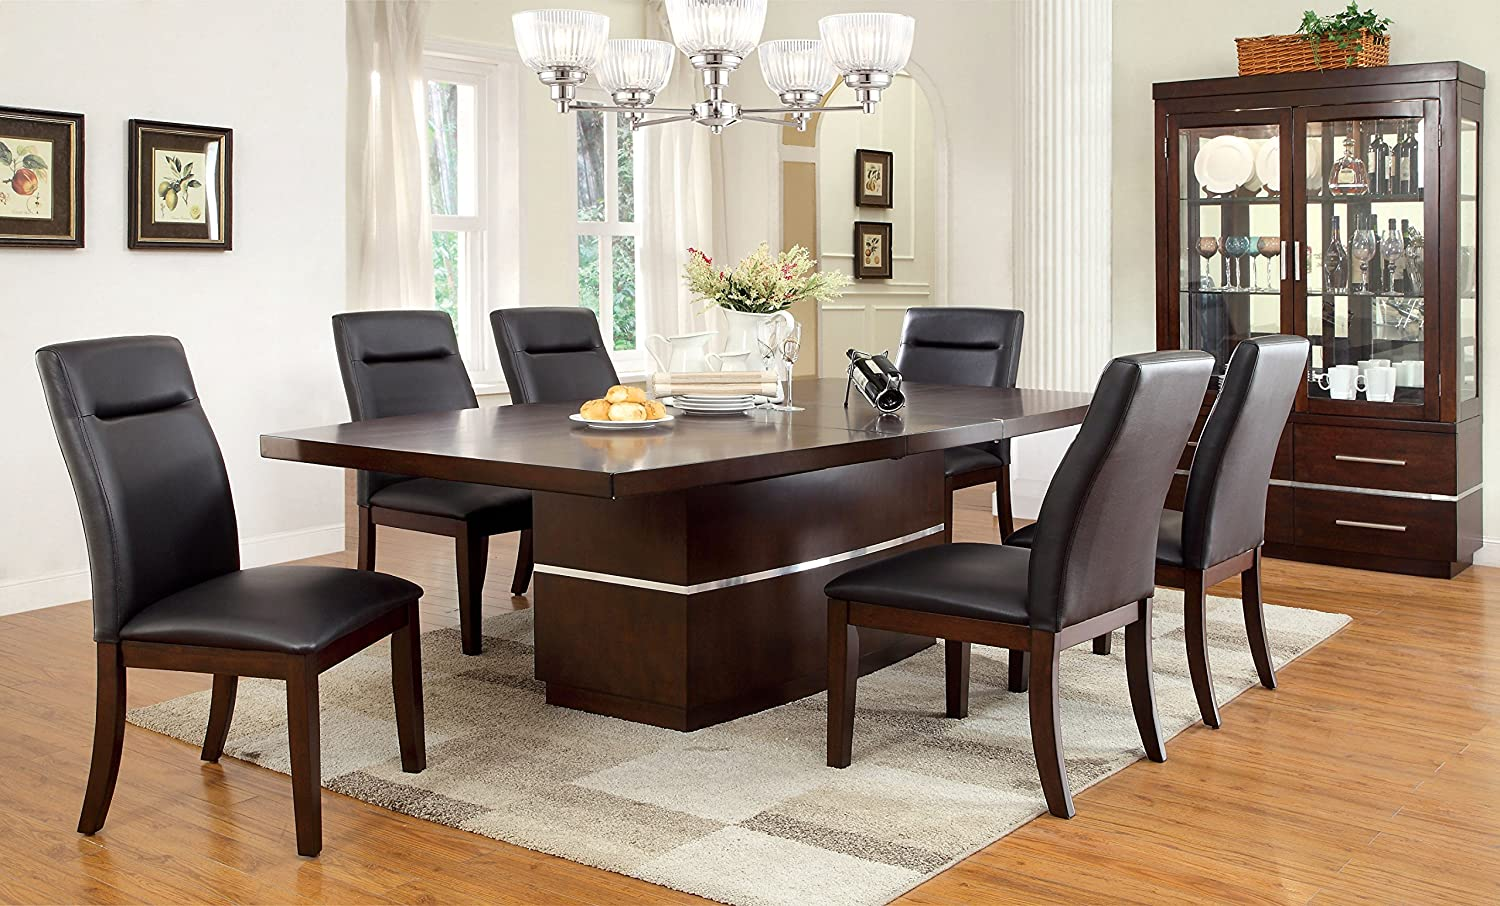 Furniture of America 7-Piece Dining Set, Brown